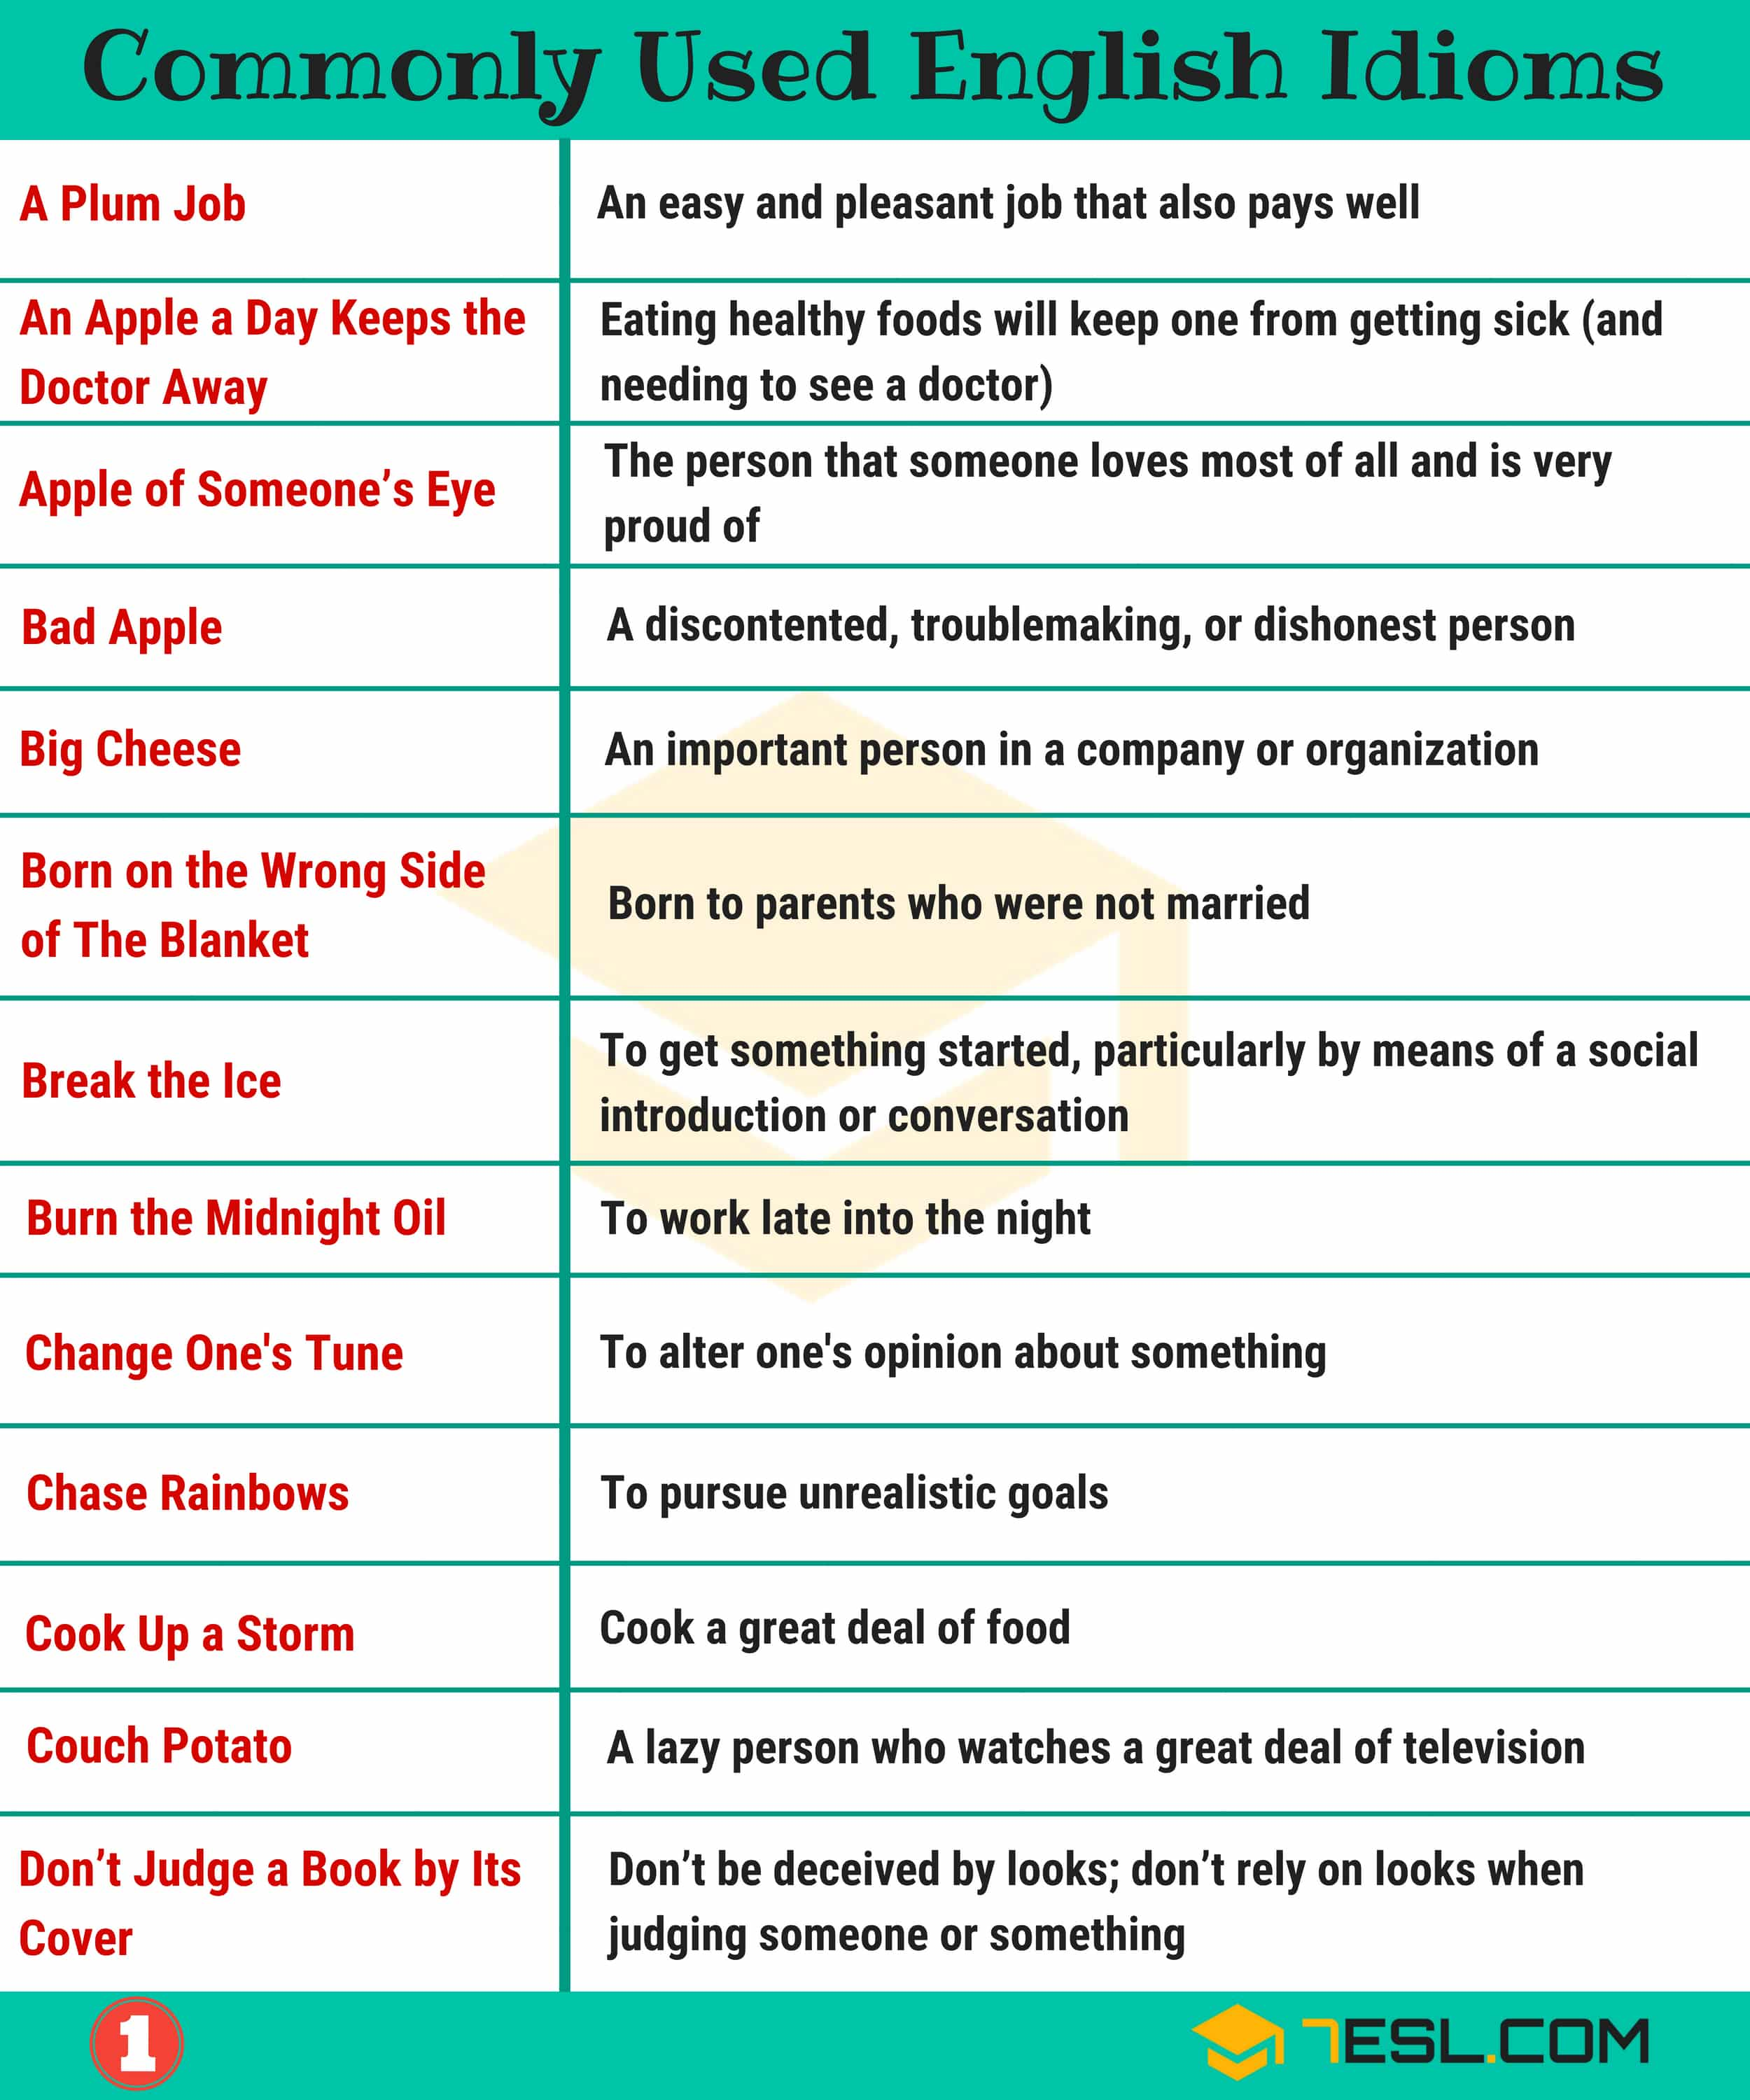 Common English Idioms And Their Meanings